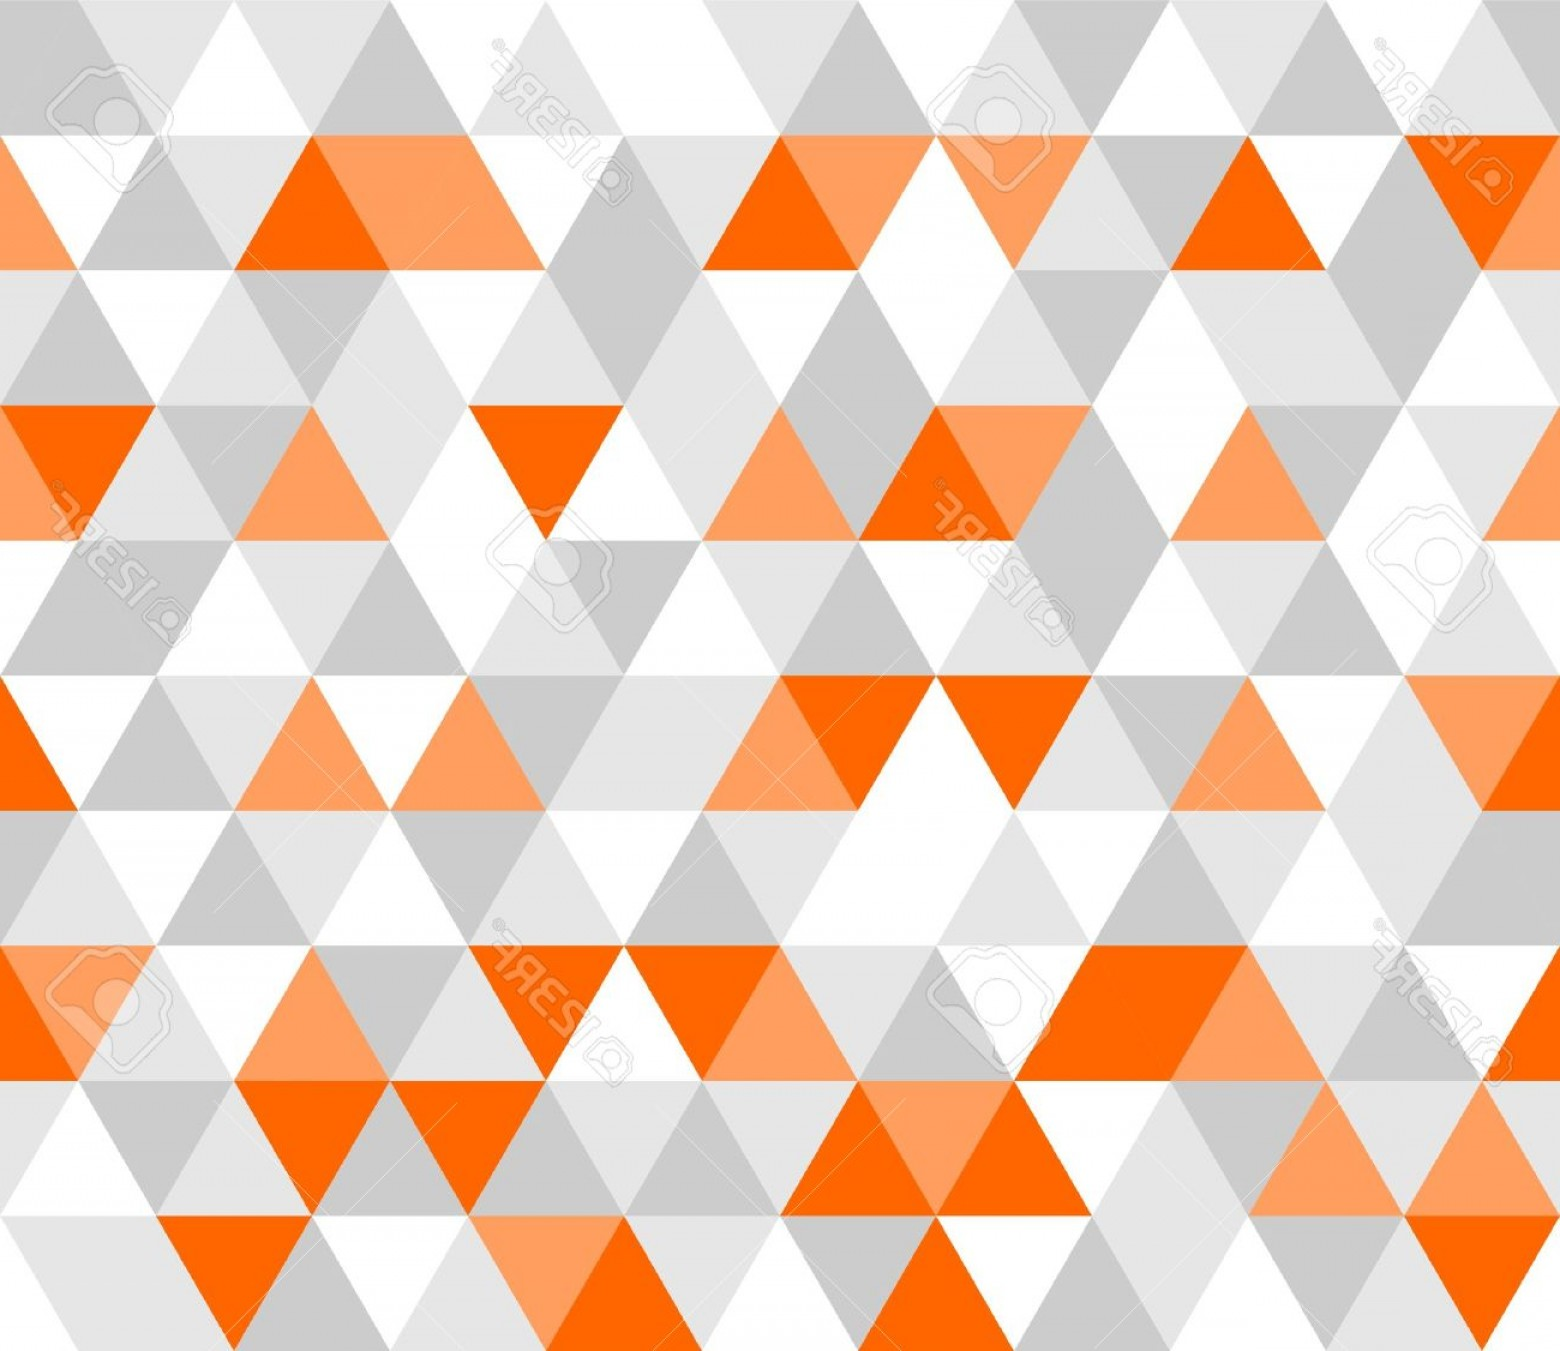 White Orange Vector: Photostock Vector Colorful Tile Vector Background Illustration Grey White And Orange Triangle Geometric